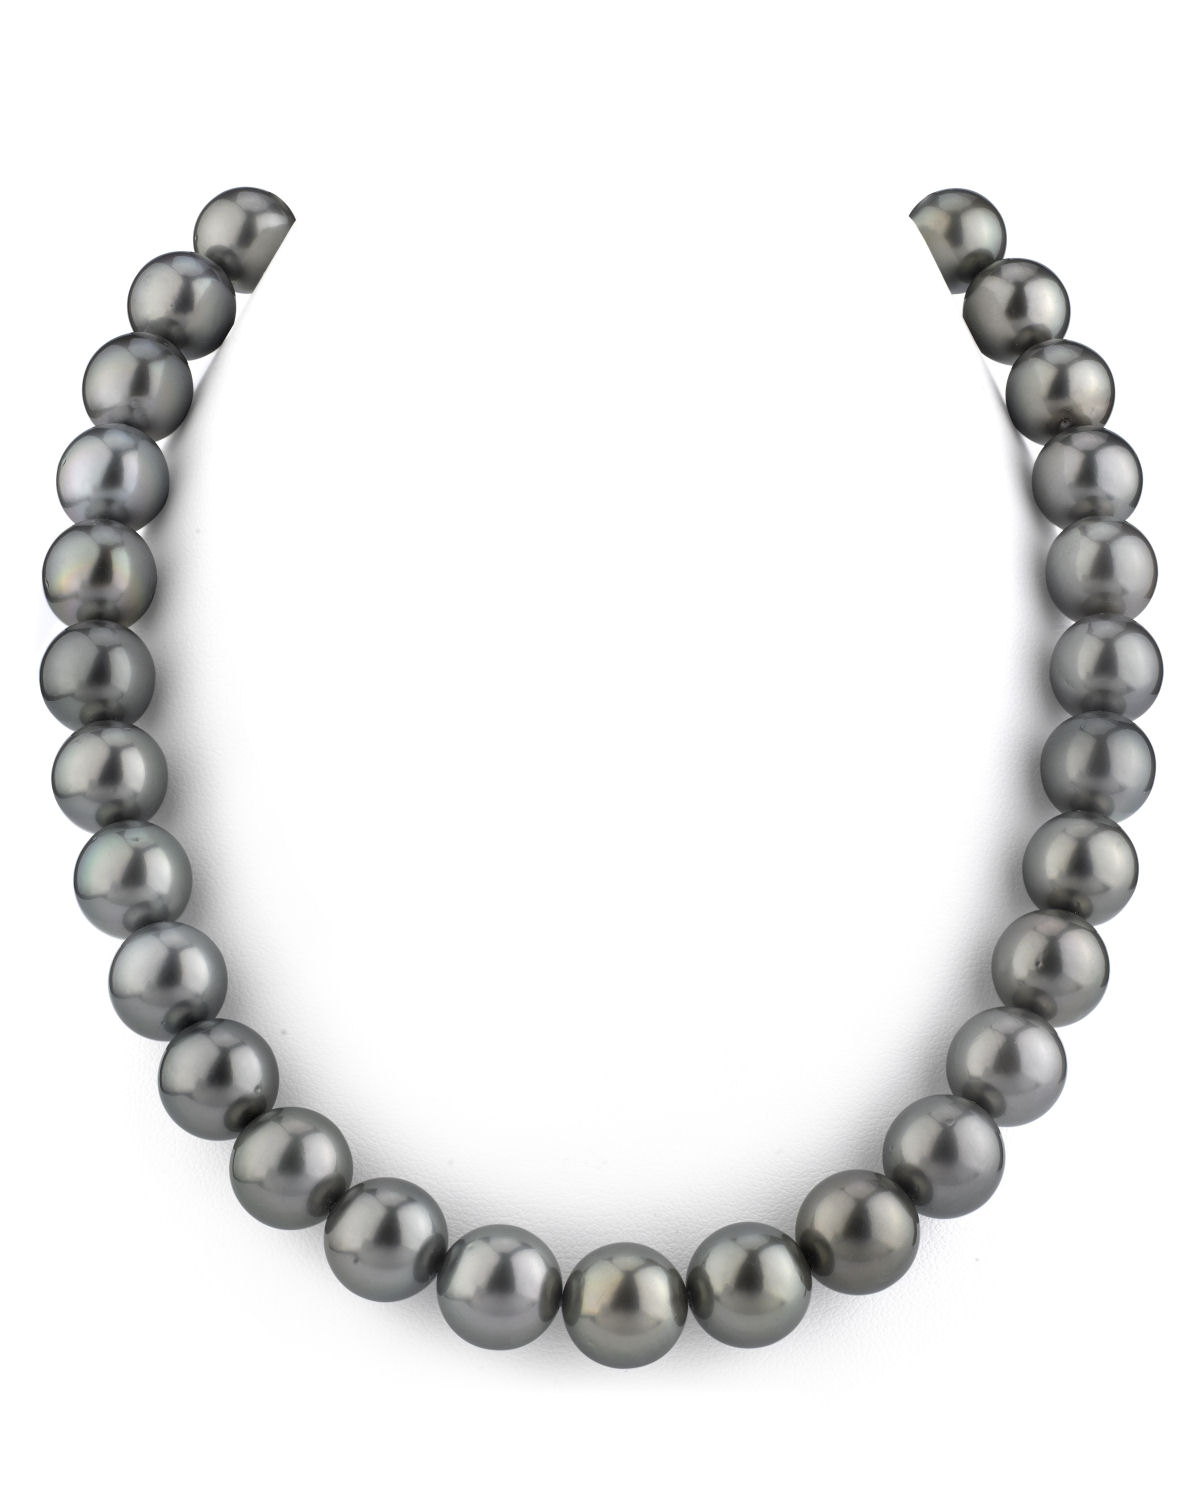 11-12mm Tahitian South Sea Pearl Necklace